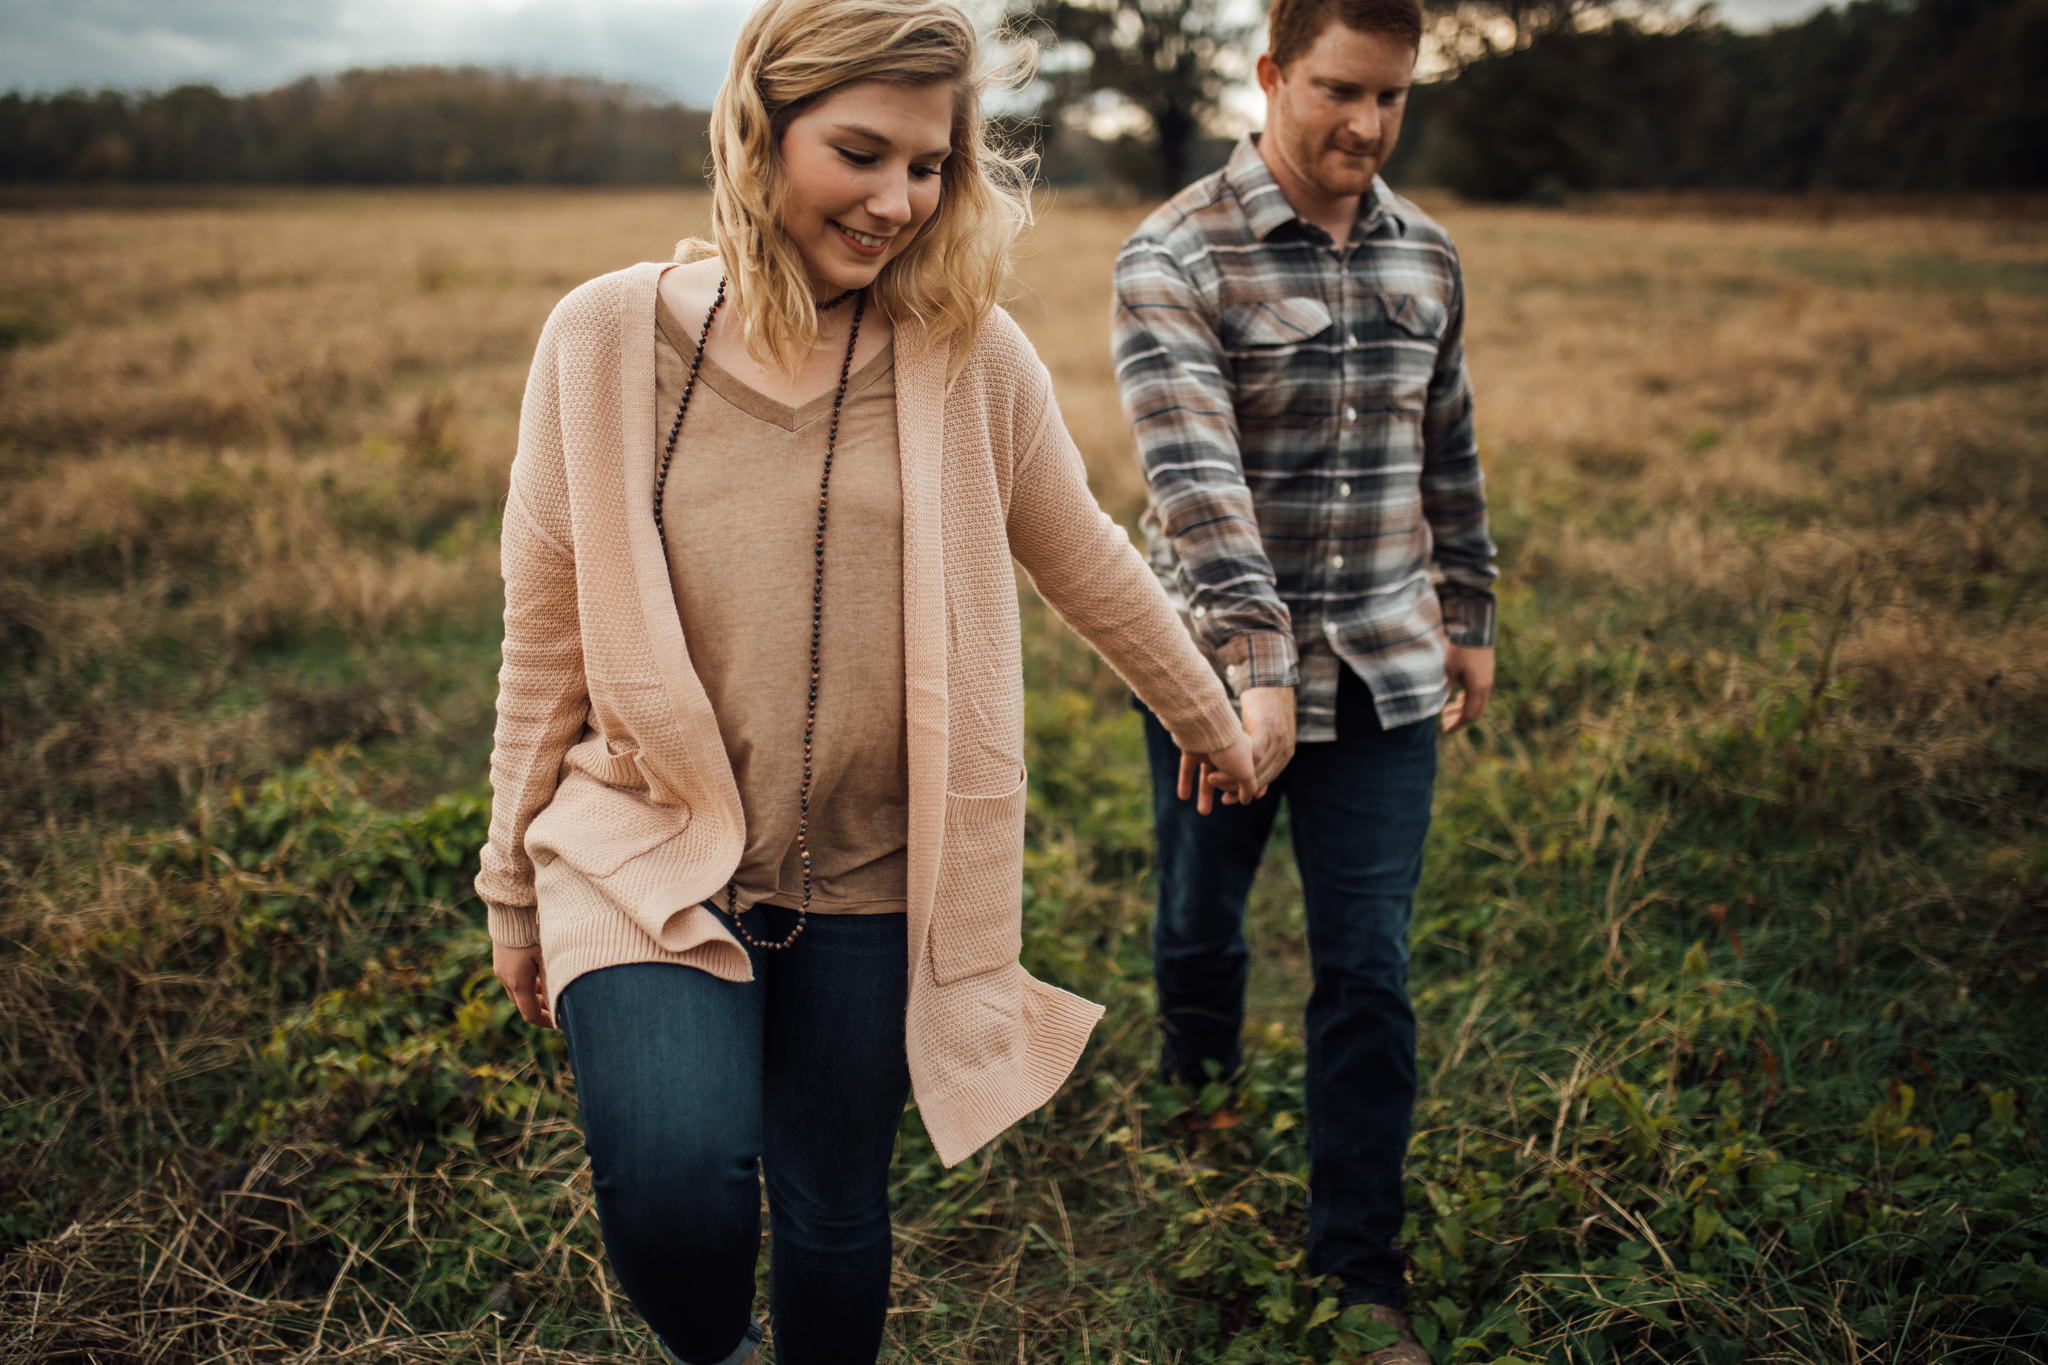 cassie-cook-photography-memphis-wedding-photographer-colorful-fall-engagement-session-autumn-leaves-carter-madison